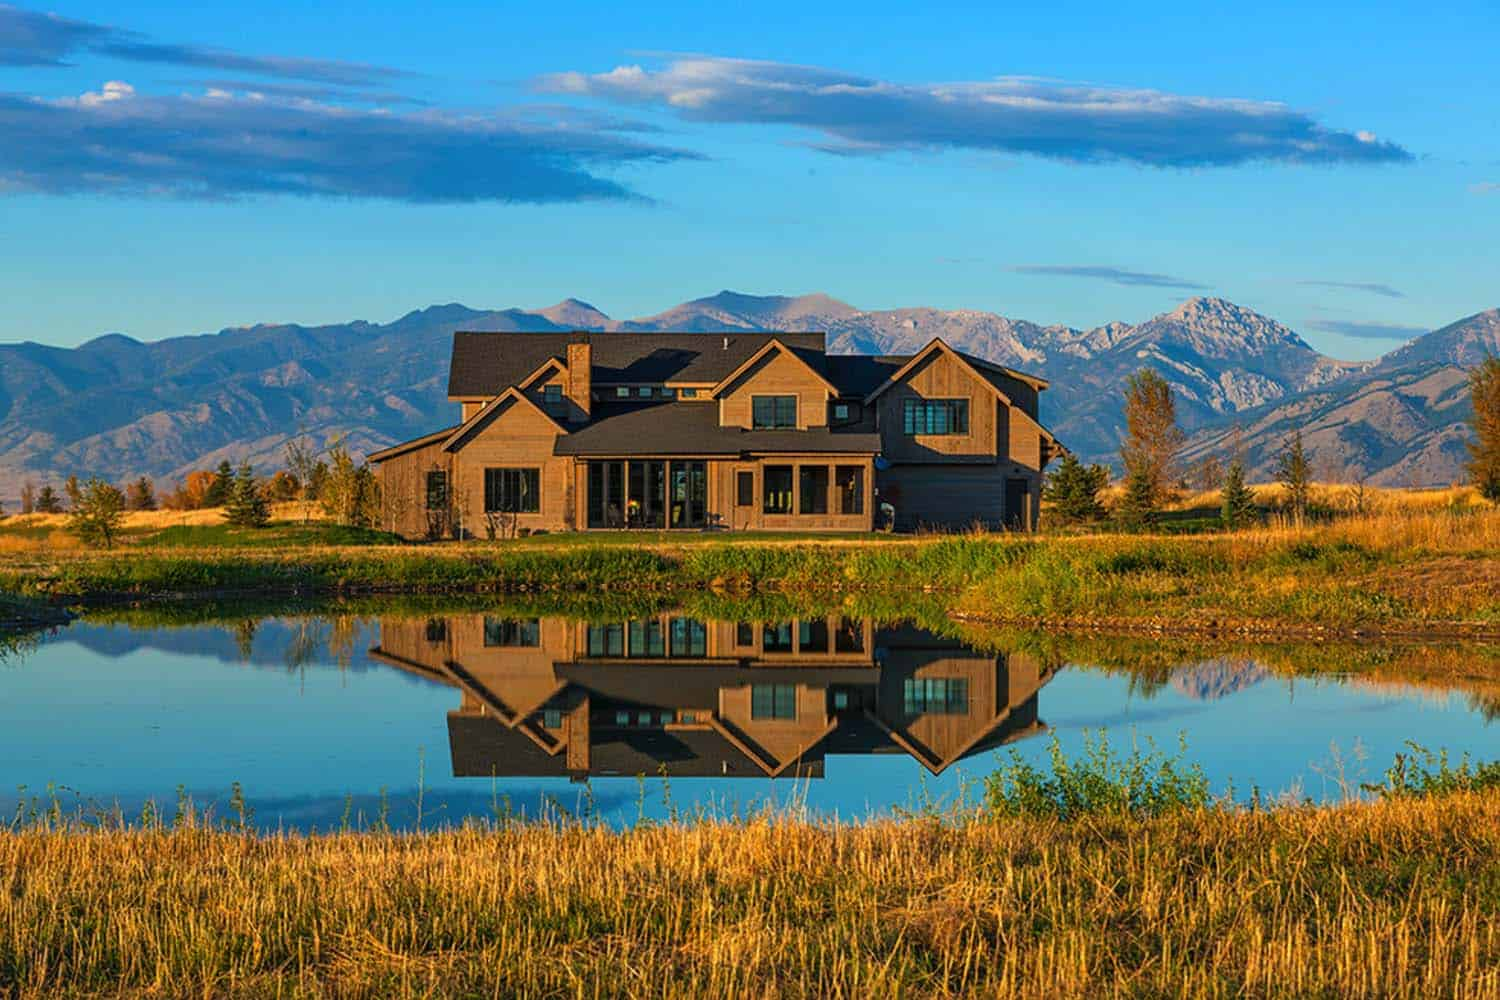 Modern Farmhouse In Montana With Surprising Details Throughout